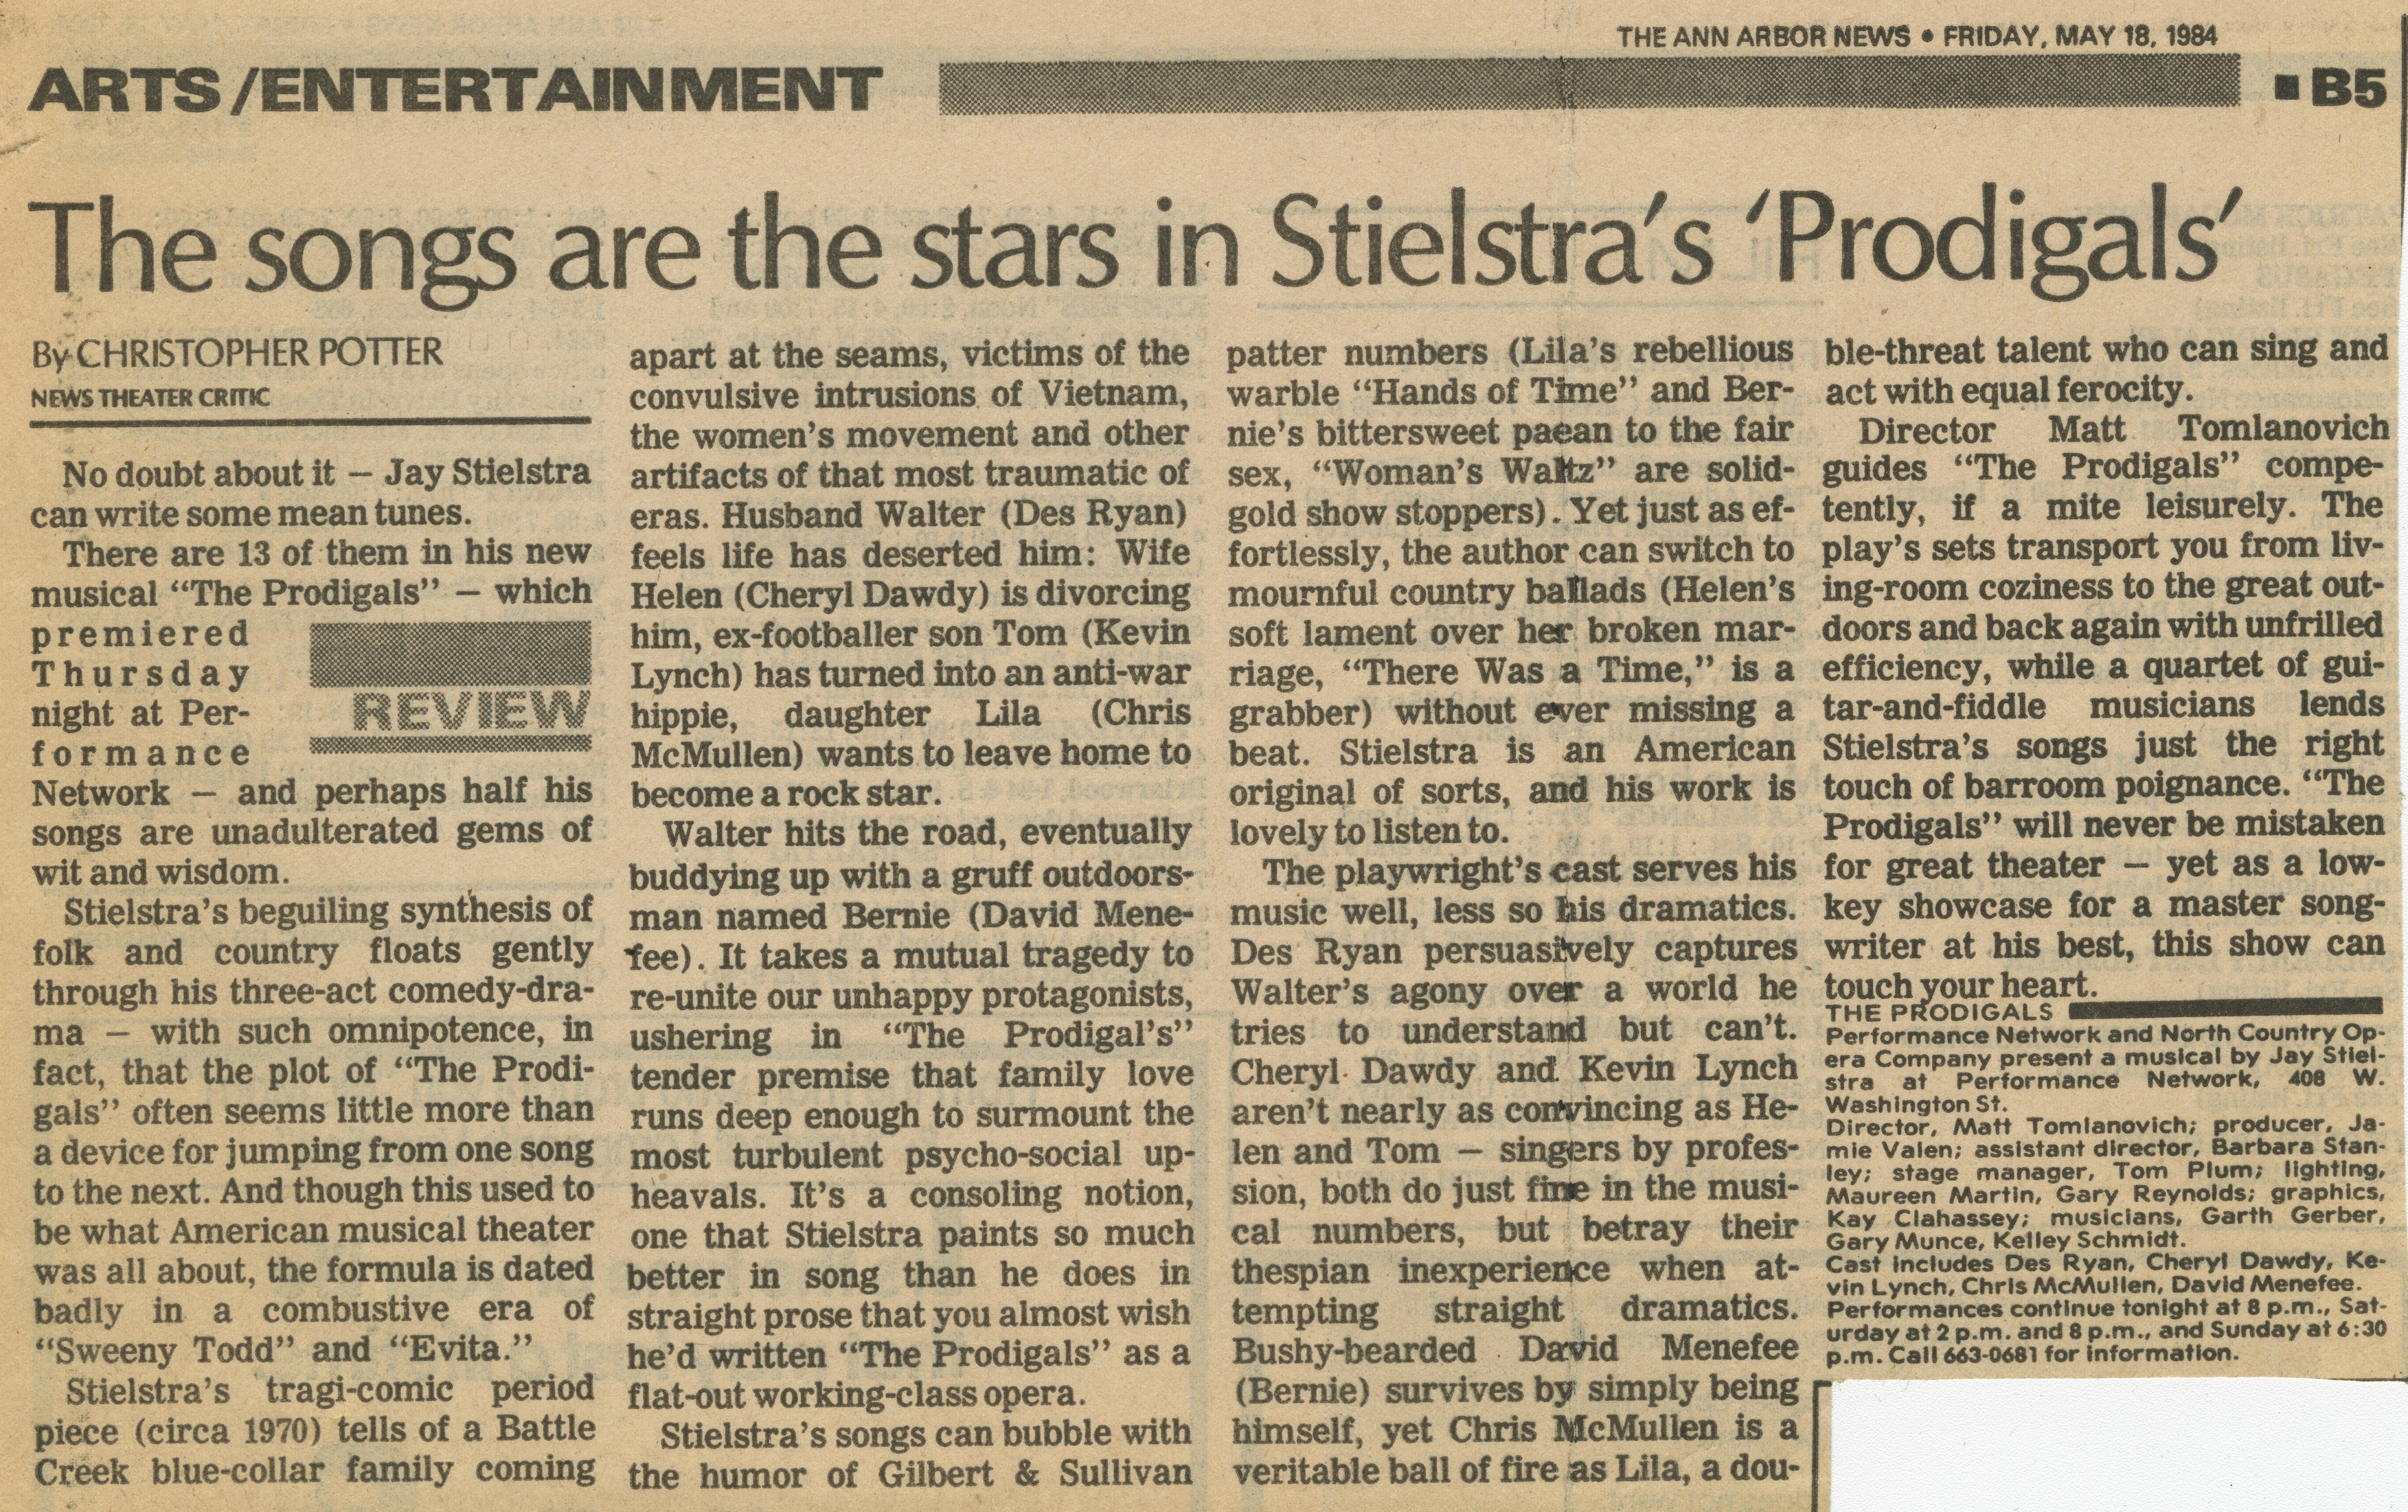 The songs are the stars in Stielstra's 'Prodigals' image